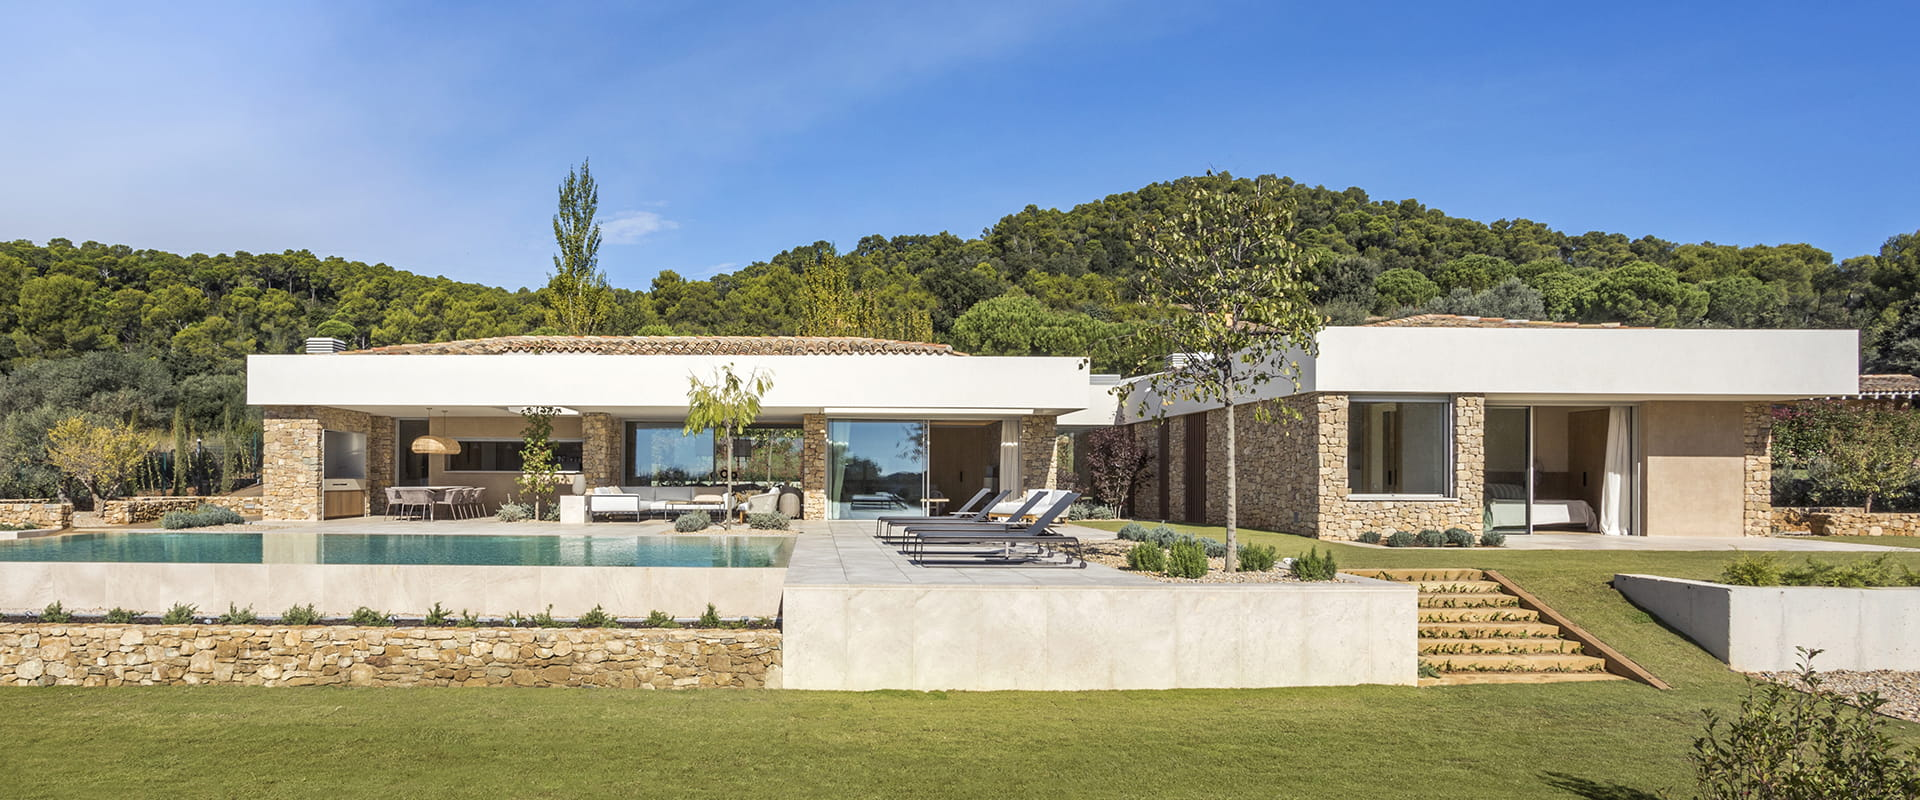 Stone façade of home with pool and garden